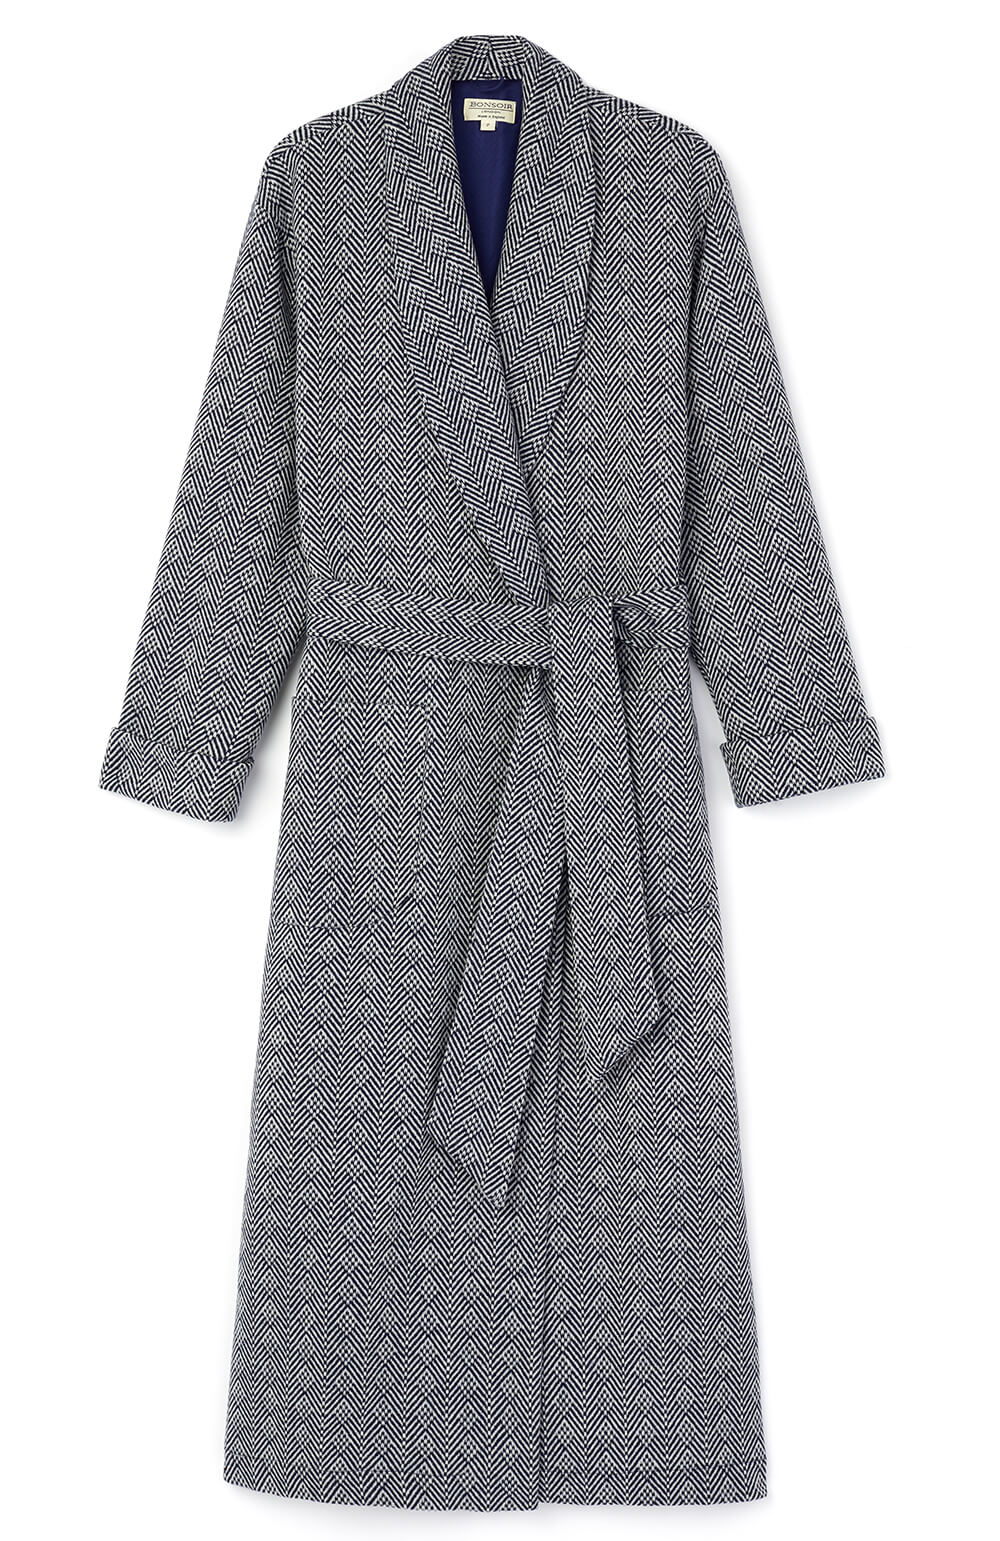 Silk Lined Navy Jacquard Wool Robe | Bonsoir of London